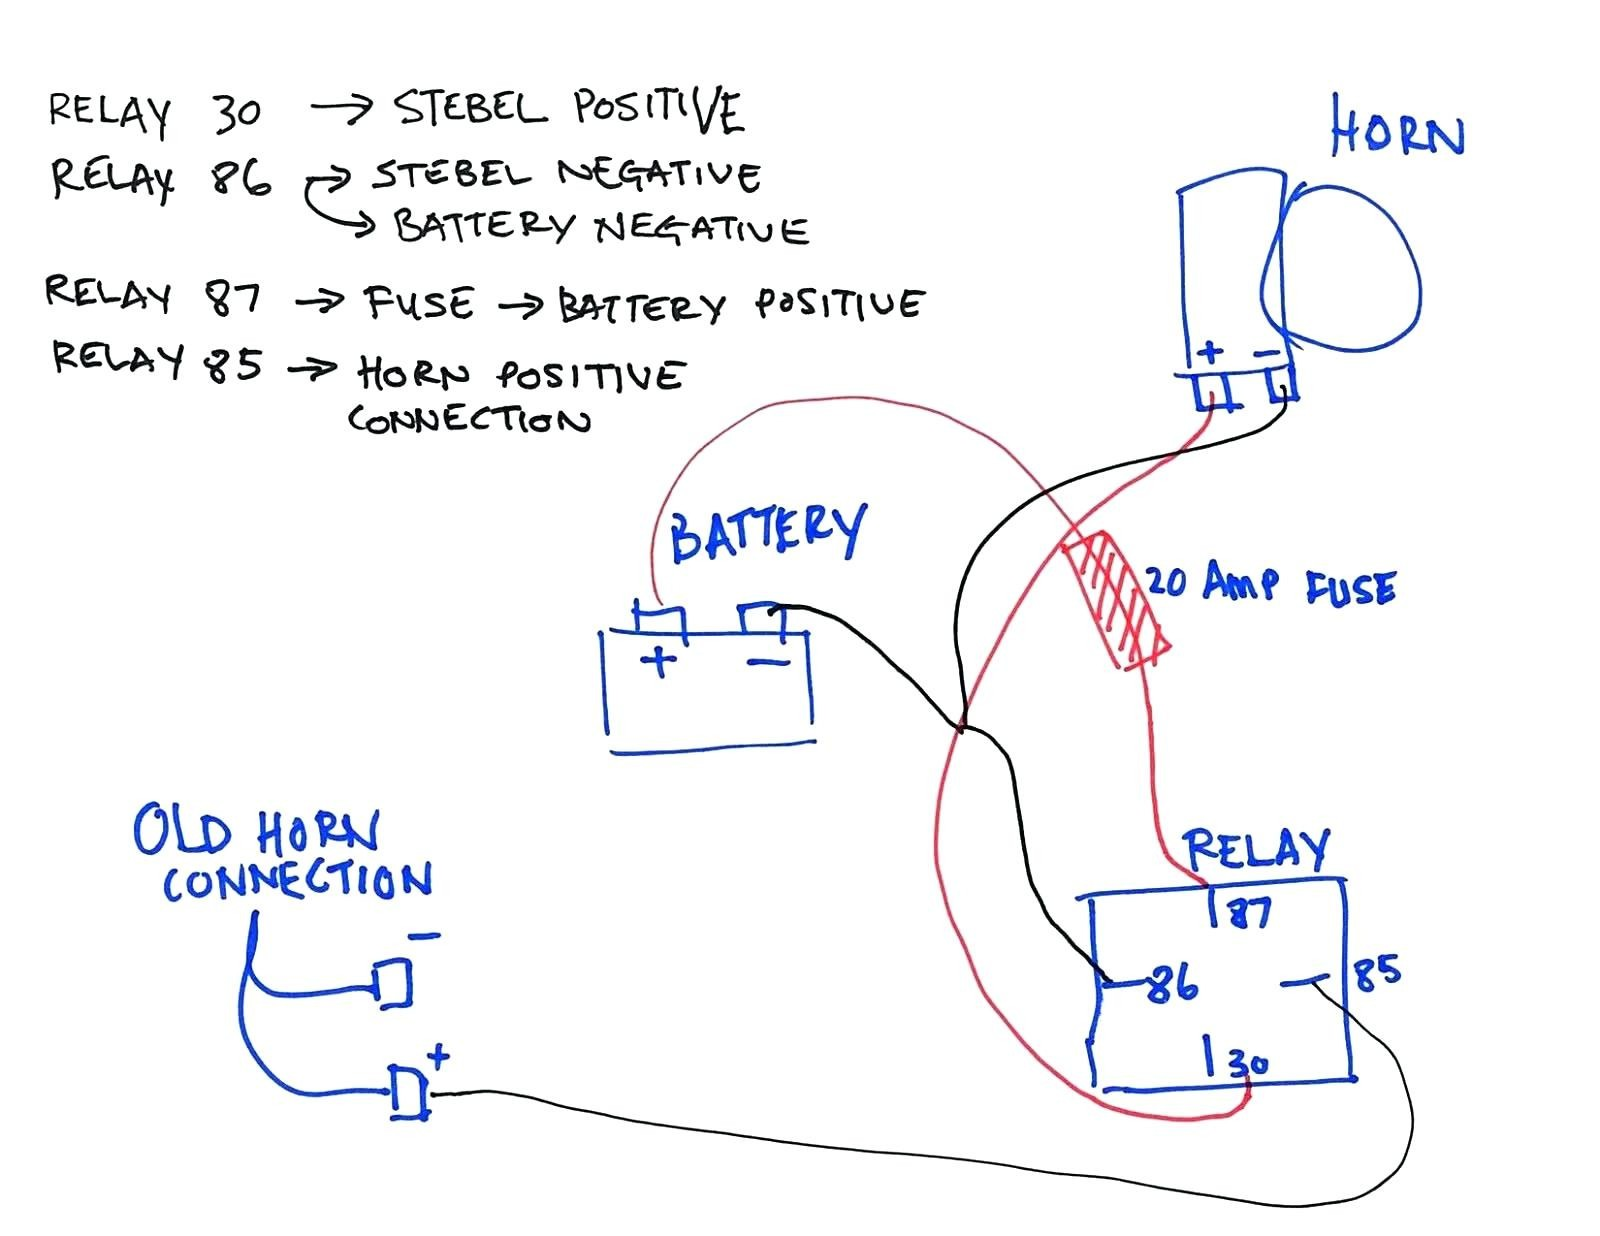 Wiring Diagram For Relay For Horn Refrence Car Horn Wiring Diagram Copy Wiring Diagram Maker Programmable Logic